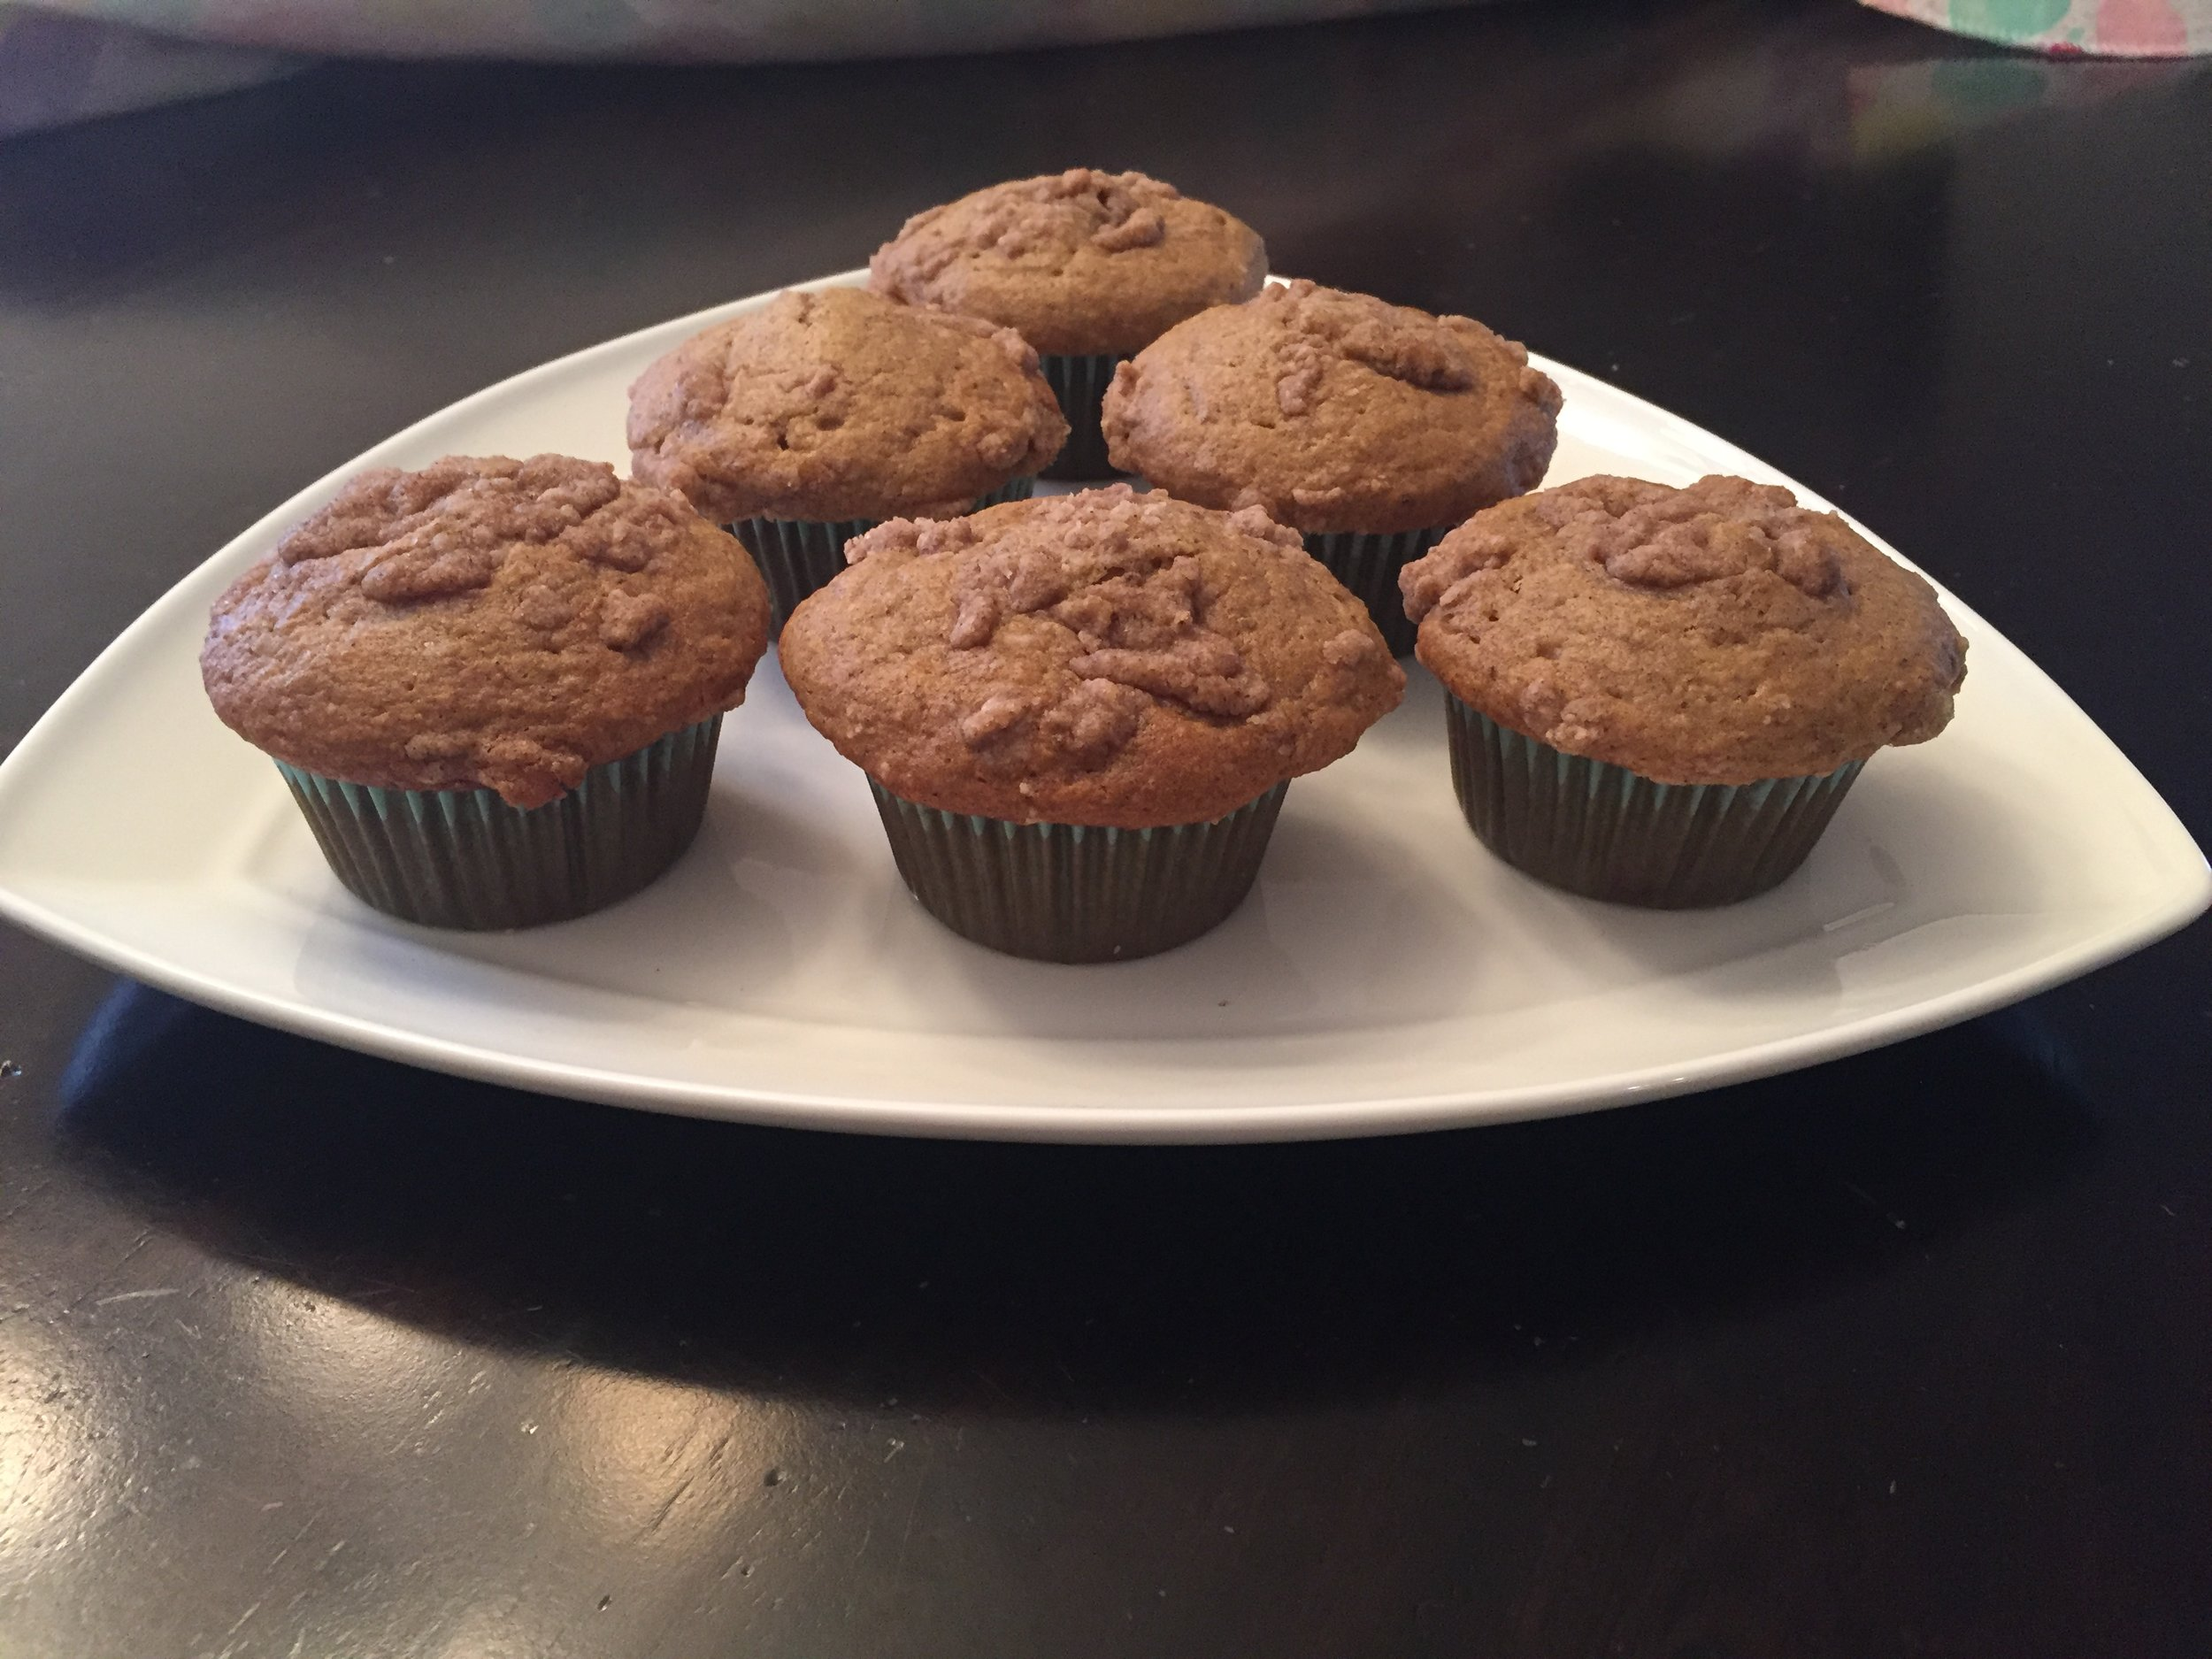 'I tried your maple muffin yesterday.OMG!So good!It was yummy, and again, wasn't heavy! Love!' - Kristin D.